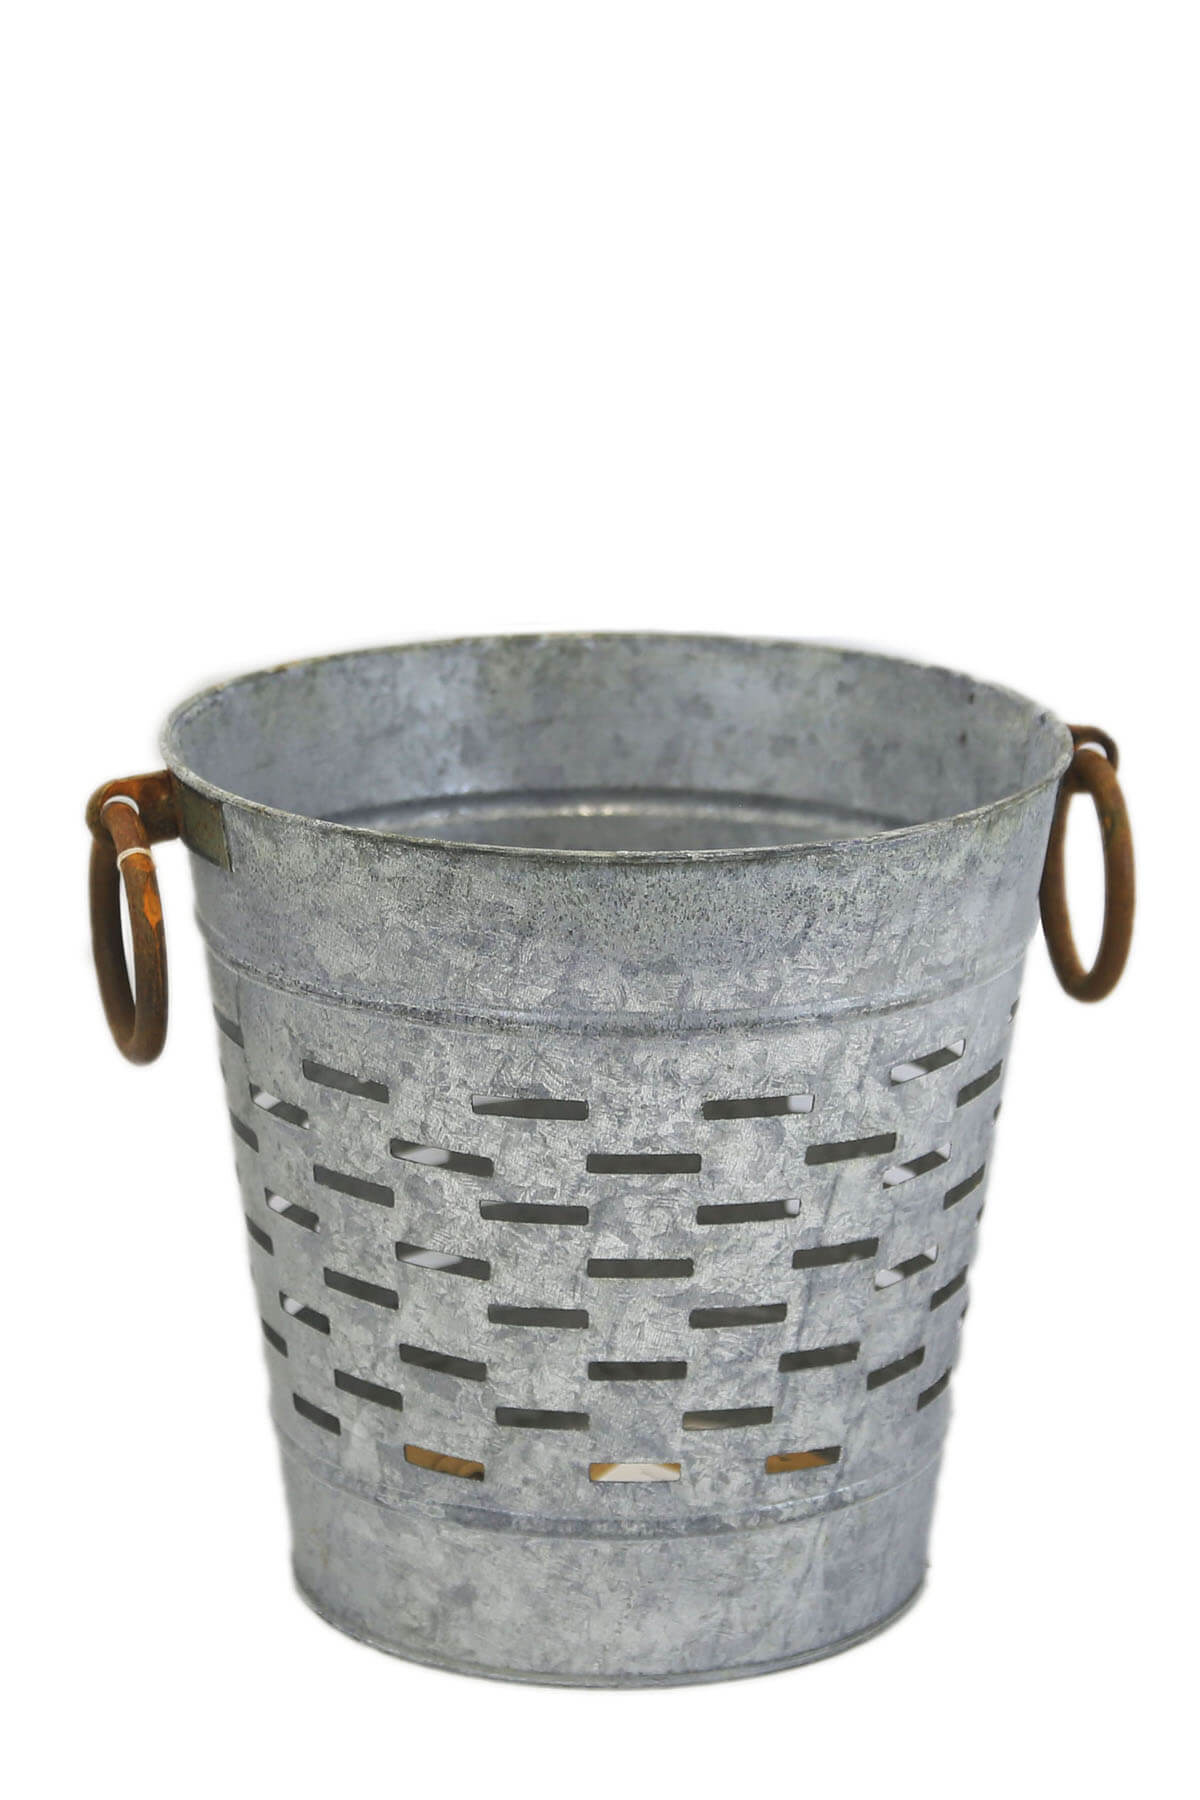 Tuscan 9 Quot Olive Bucket With Copper Ring Handles